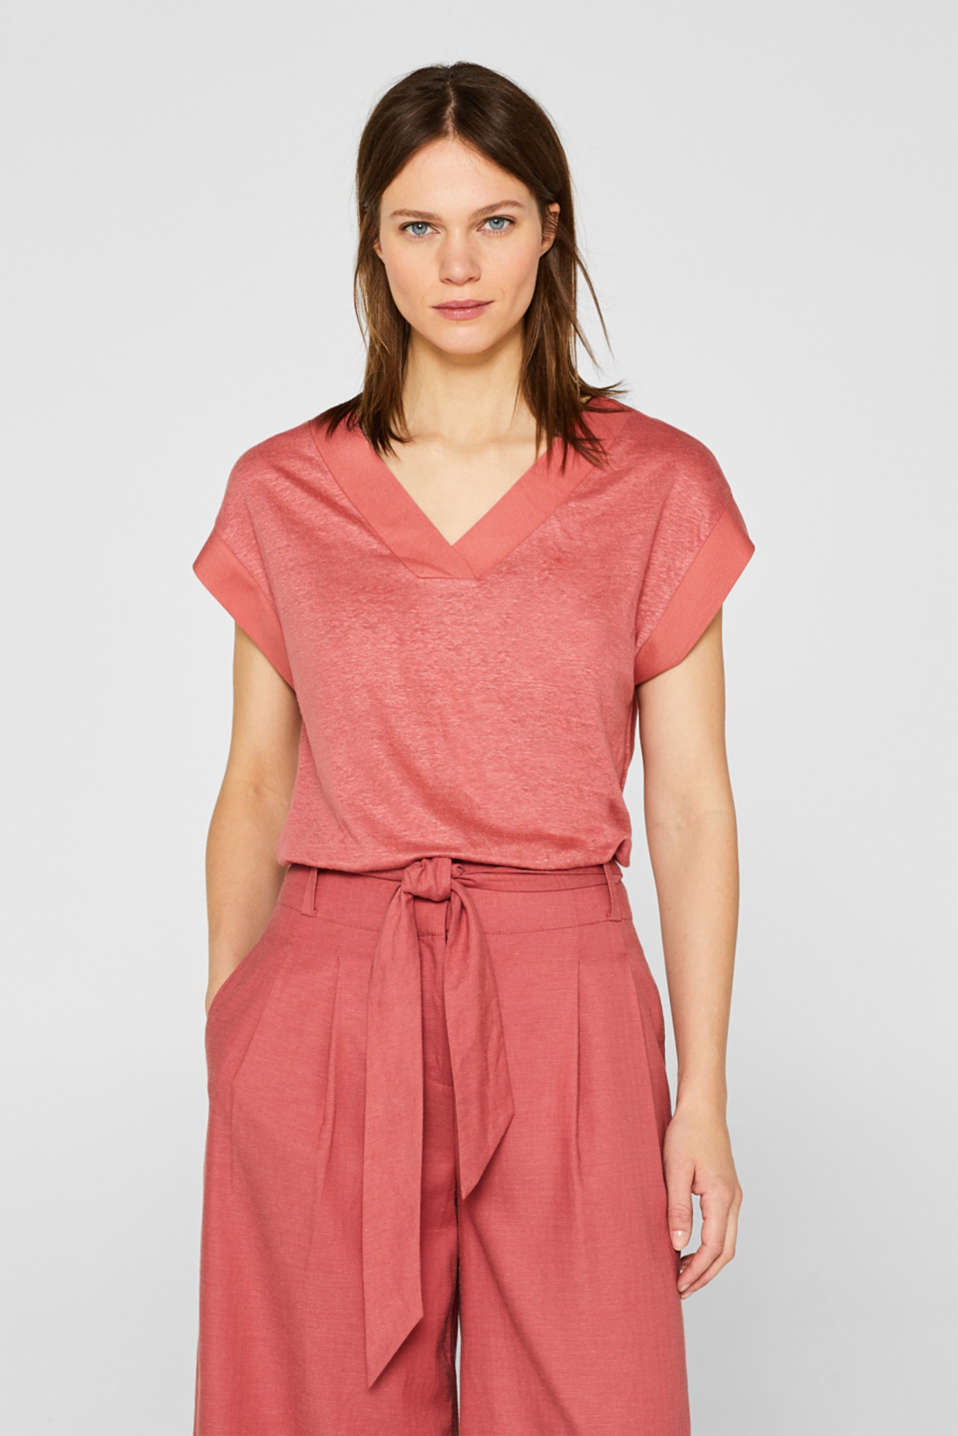 Esprit - Made of blended linen: top with fabric trims